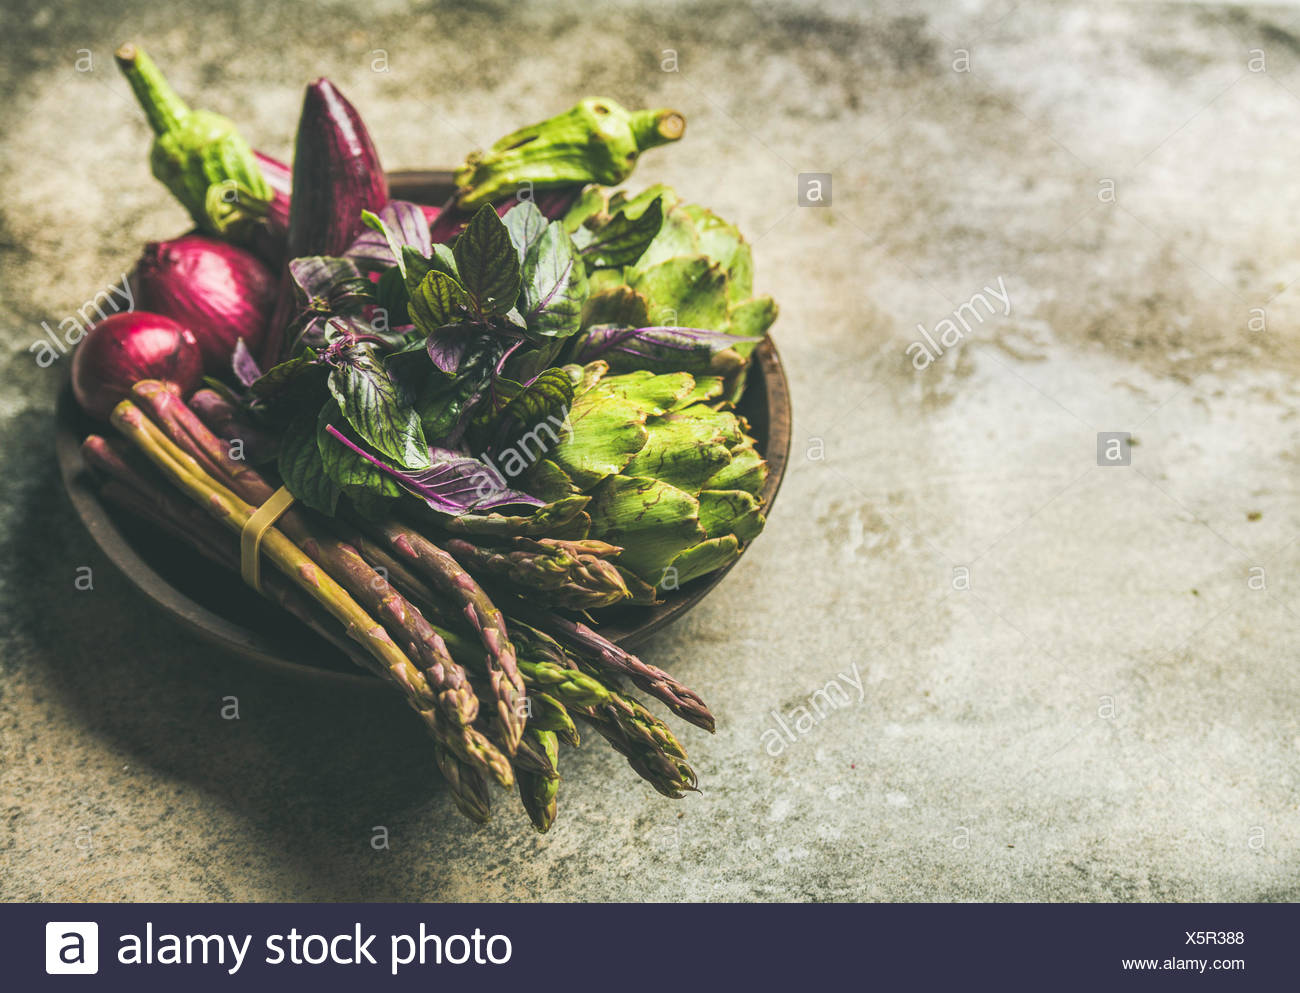 Green and purple vegetables on plate over concrete background, selective focus, copy space. Local produce for healthy cooking. Eggplans, beans, kale,  - Stock Image